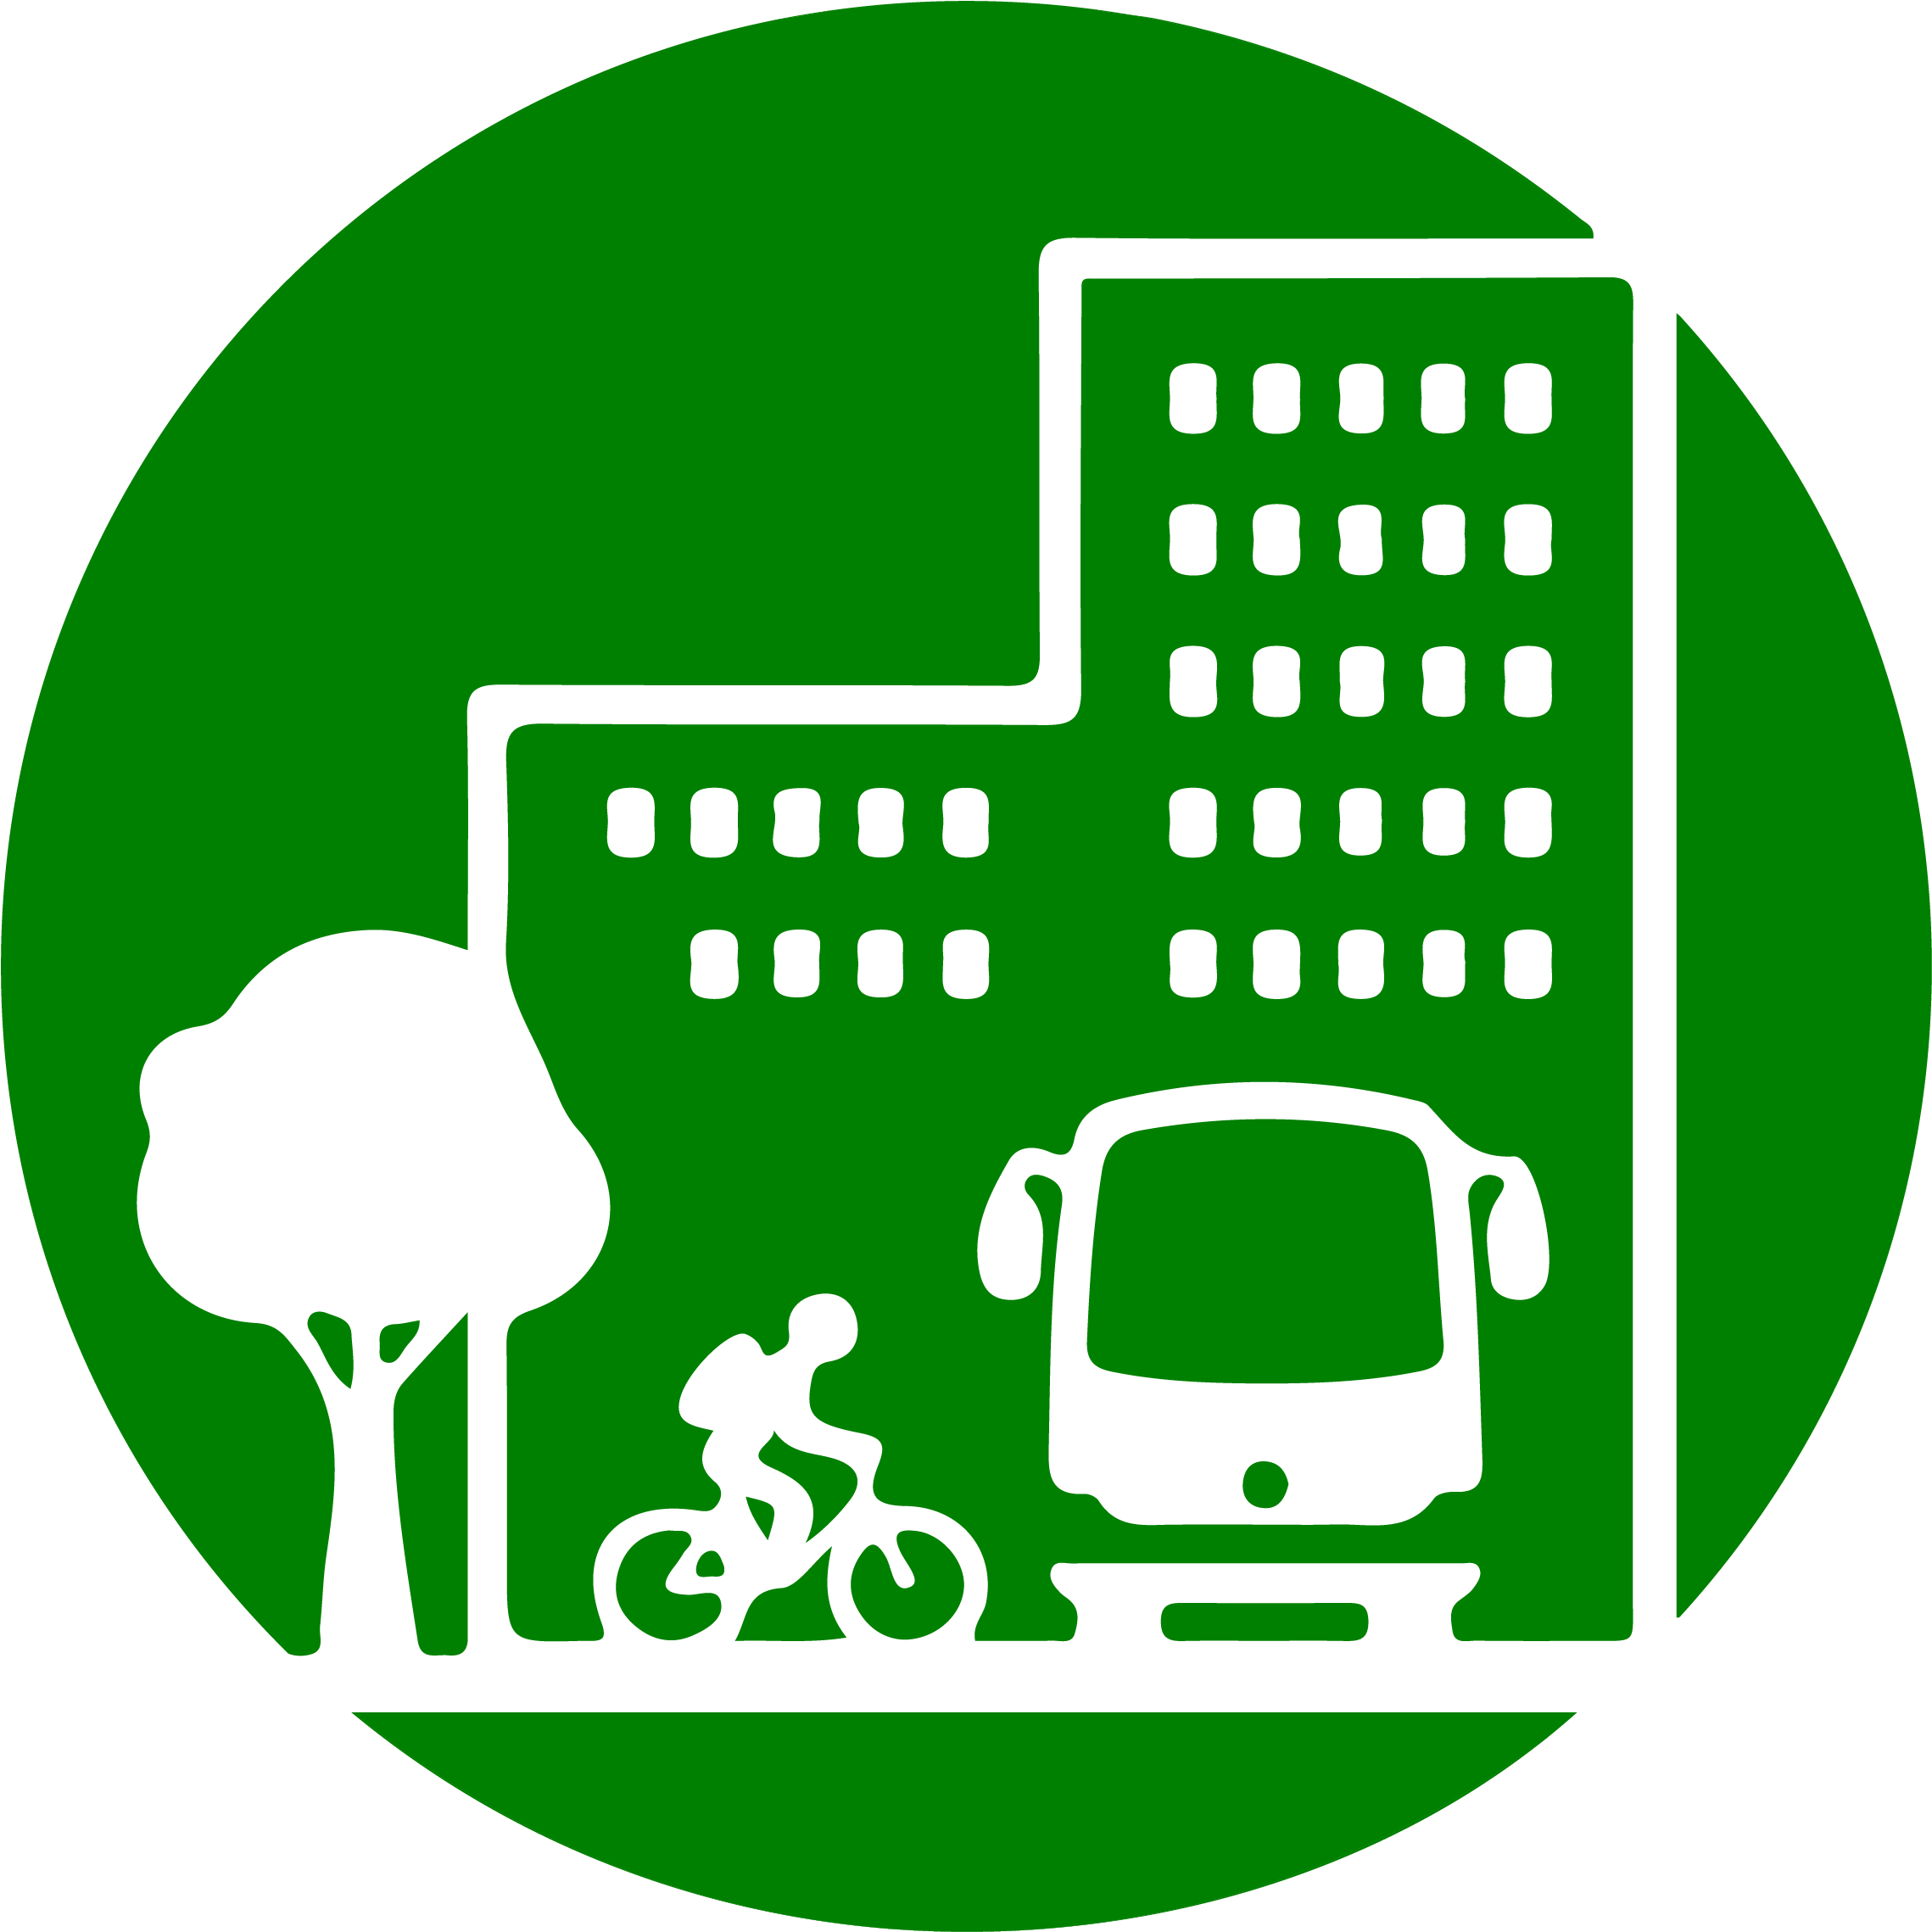 Hd environment land use. Planning clipart urban planner